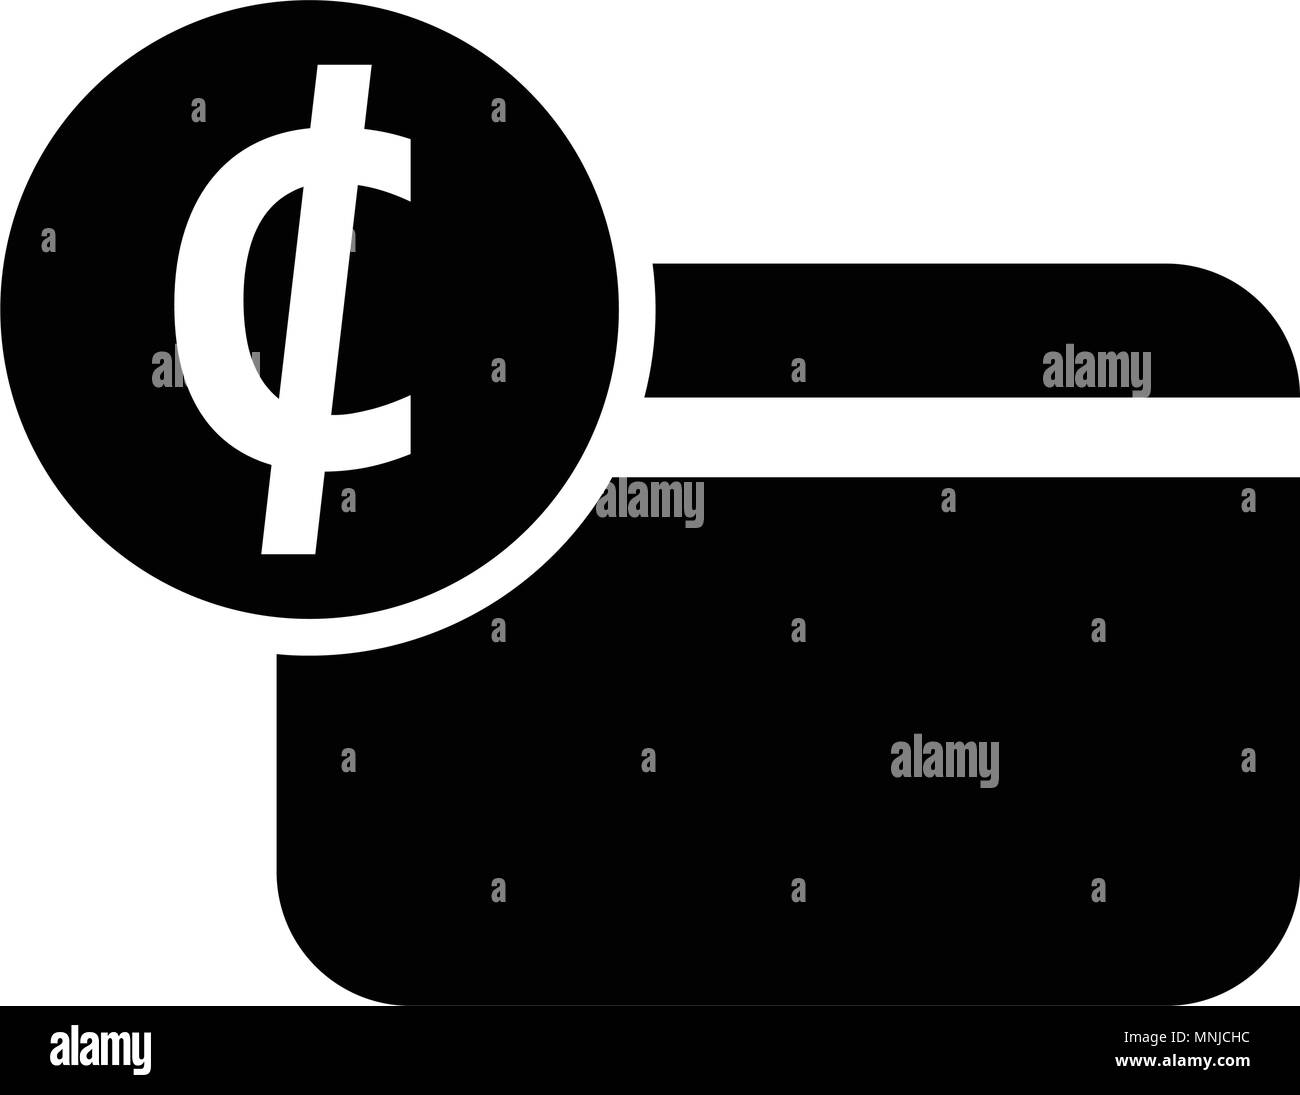 Ghana Cedi credit card icon, isolated on white background - Stock Image